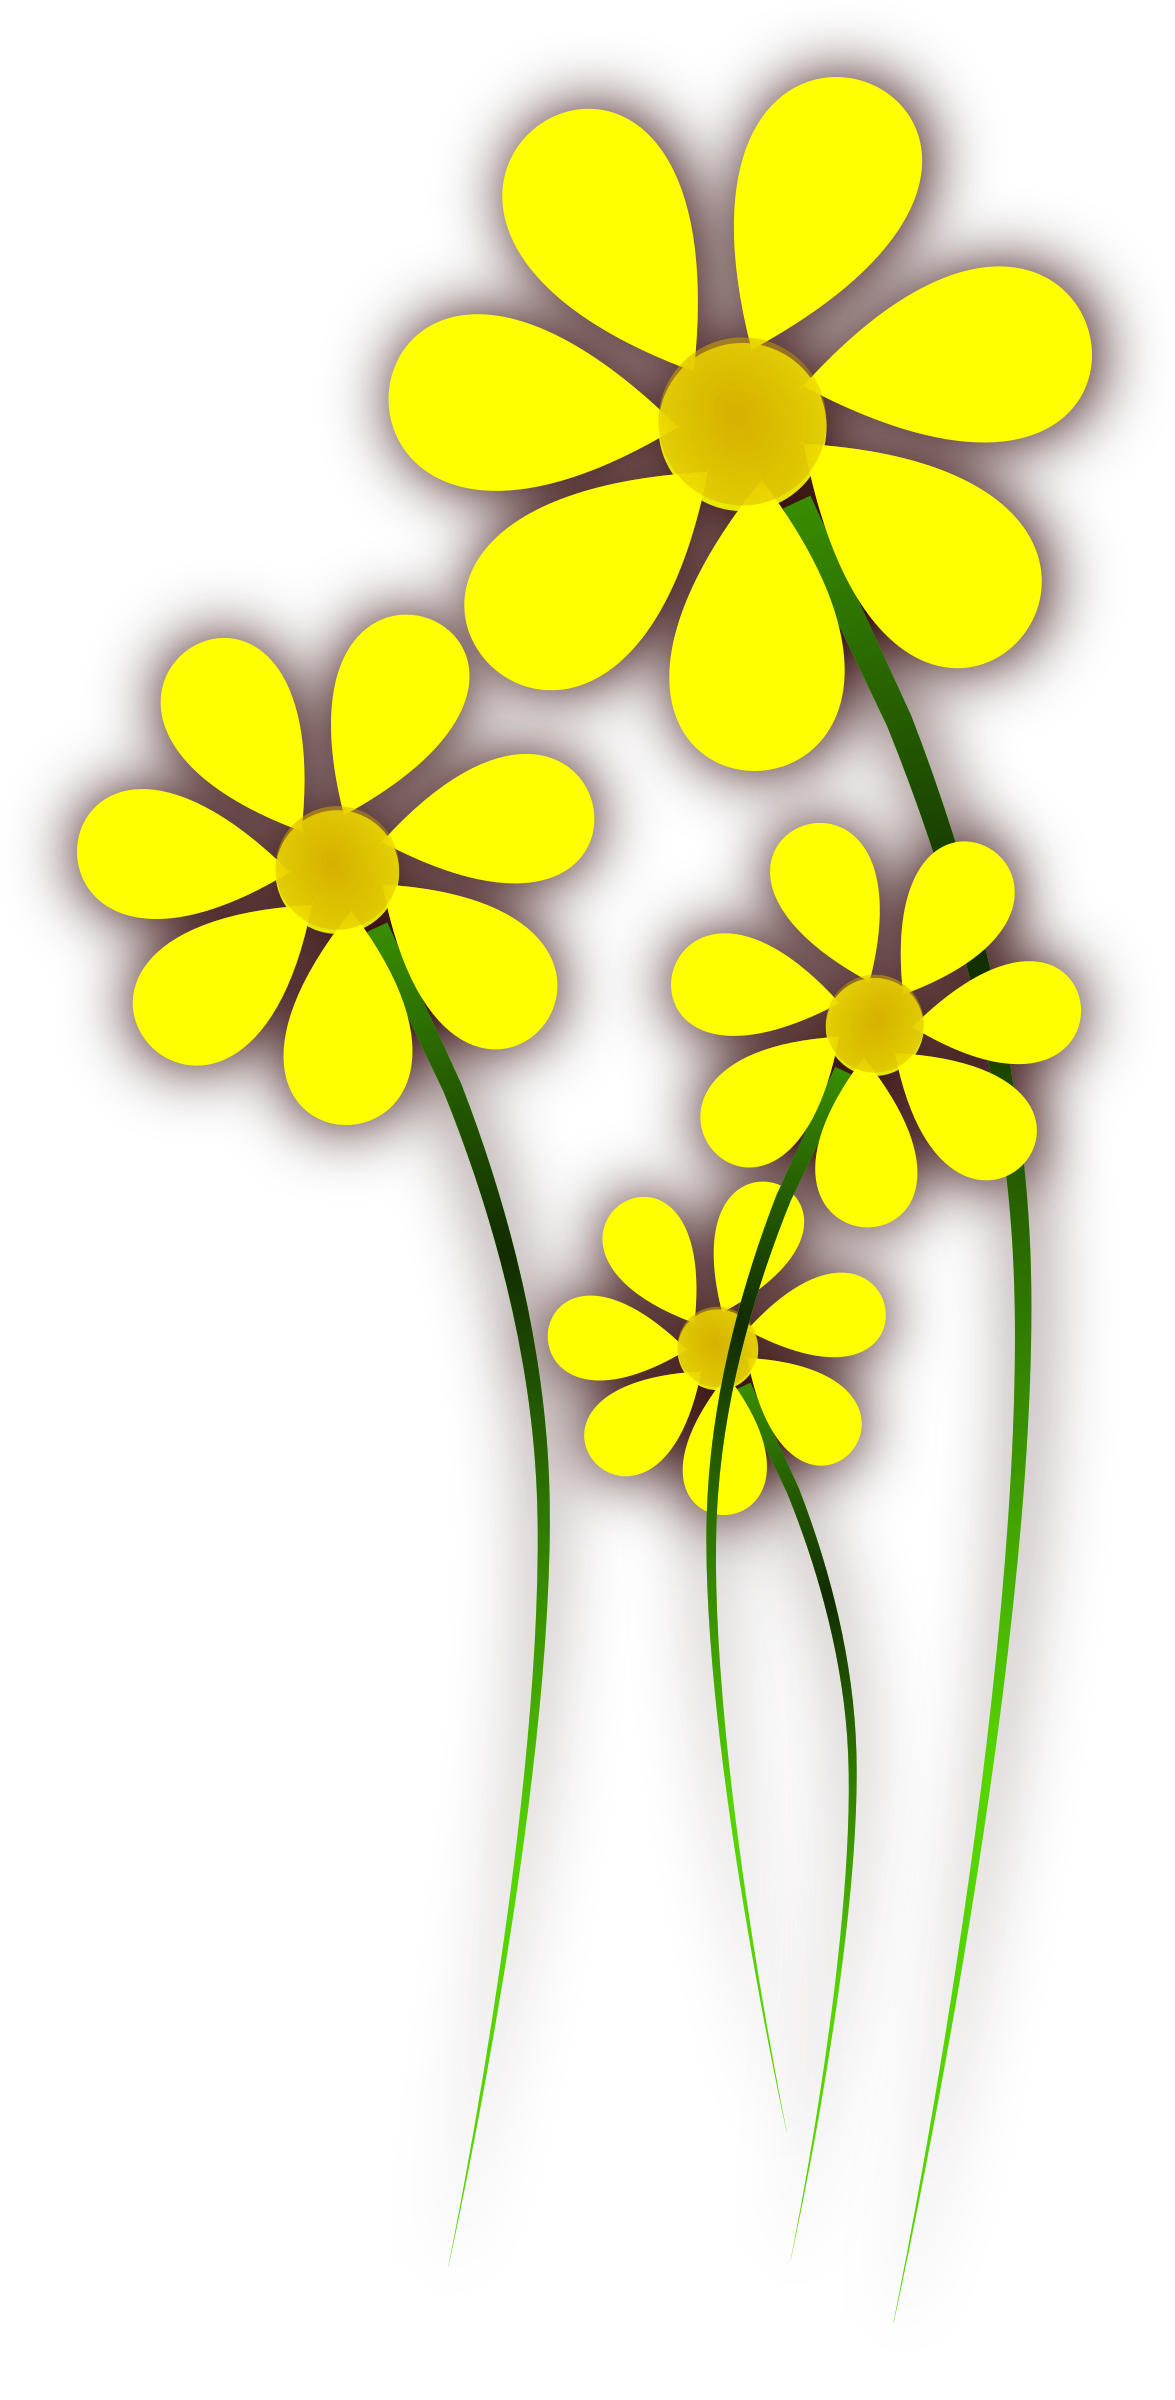 Daisies big image png. Daisy clipart daisie